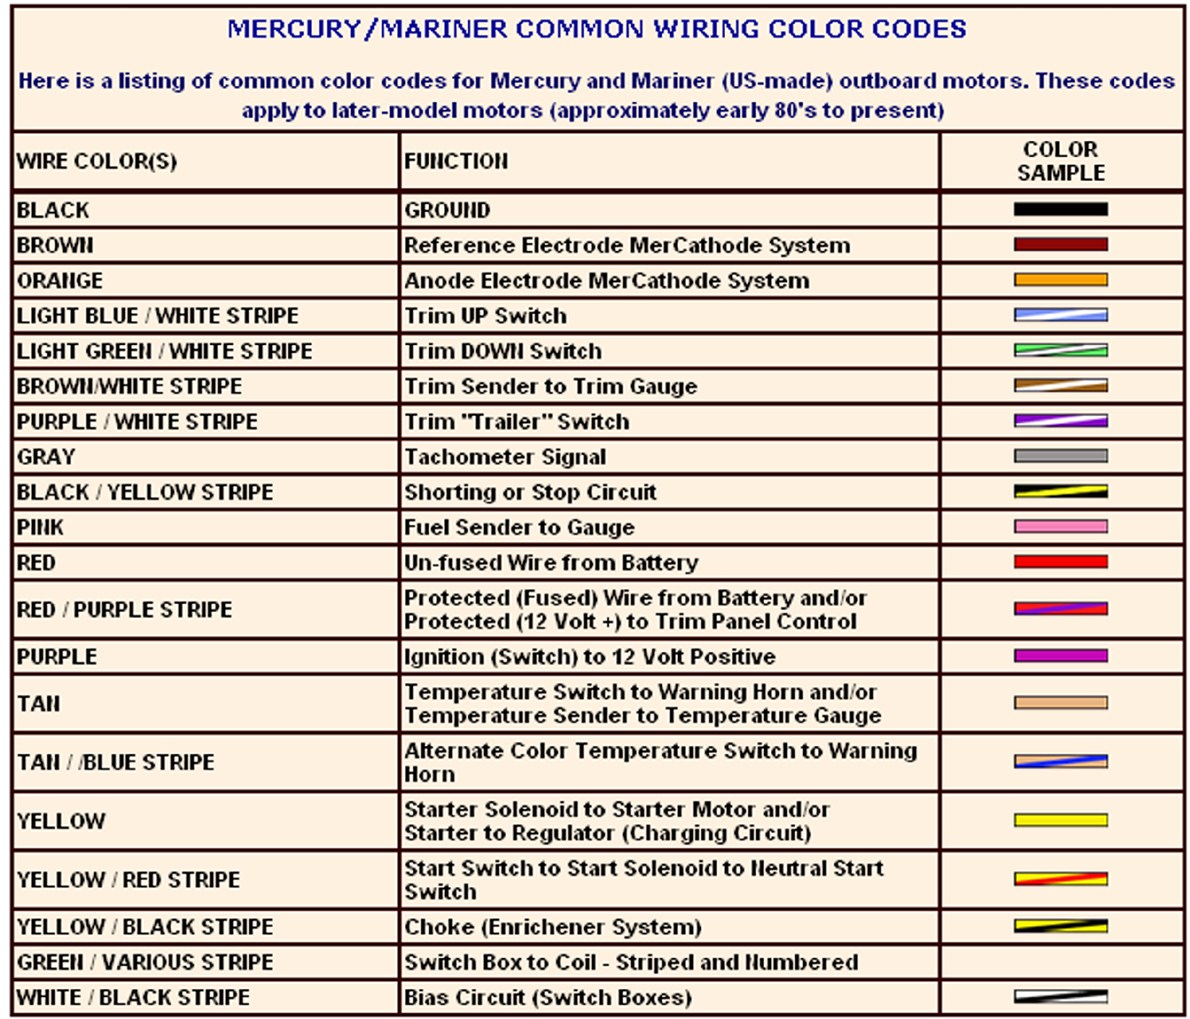 Nd 4888 Car Audio Wiring Color Codes Wiring Diagram